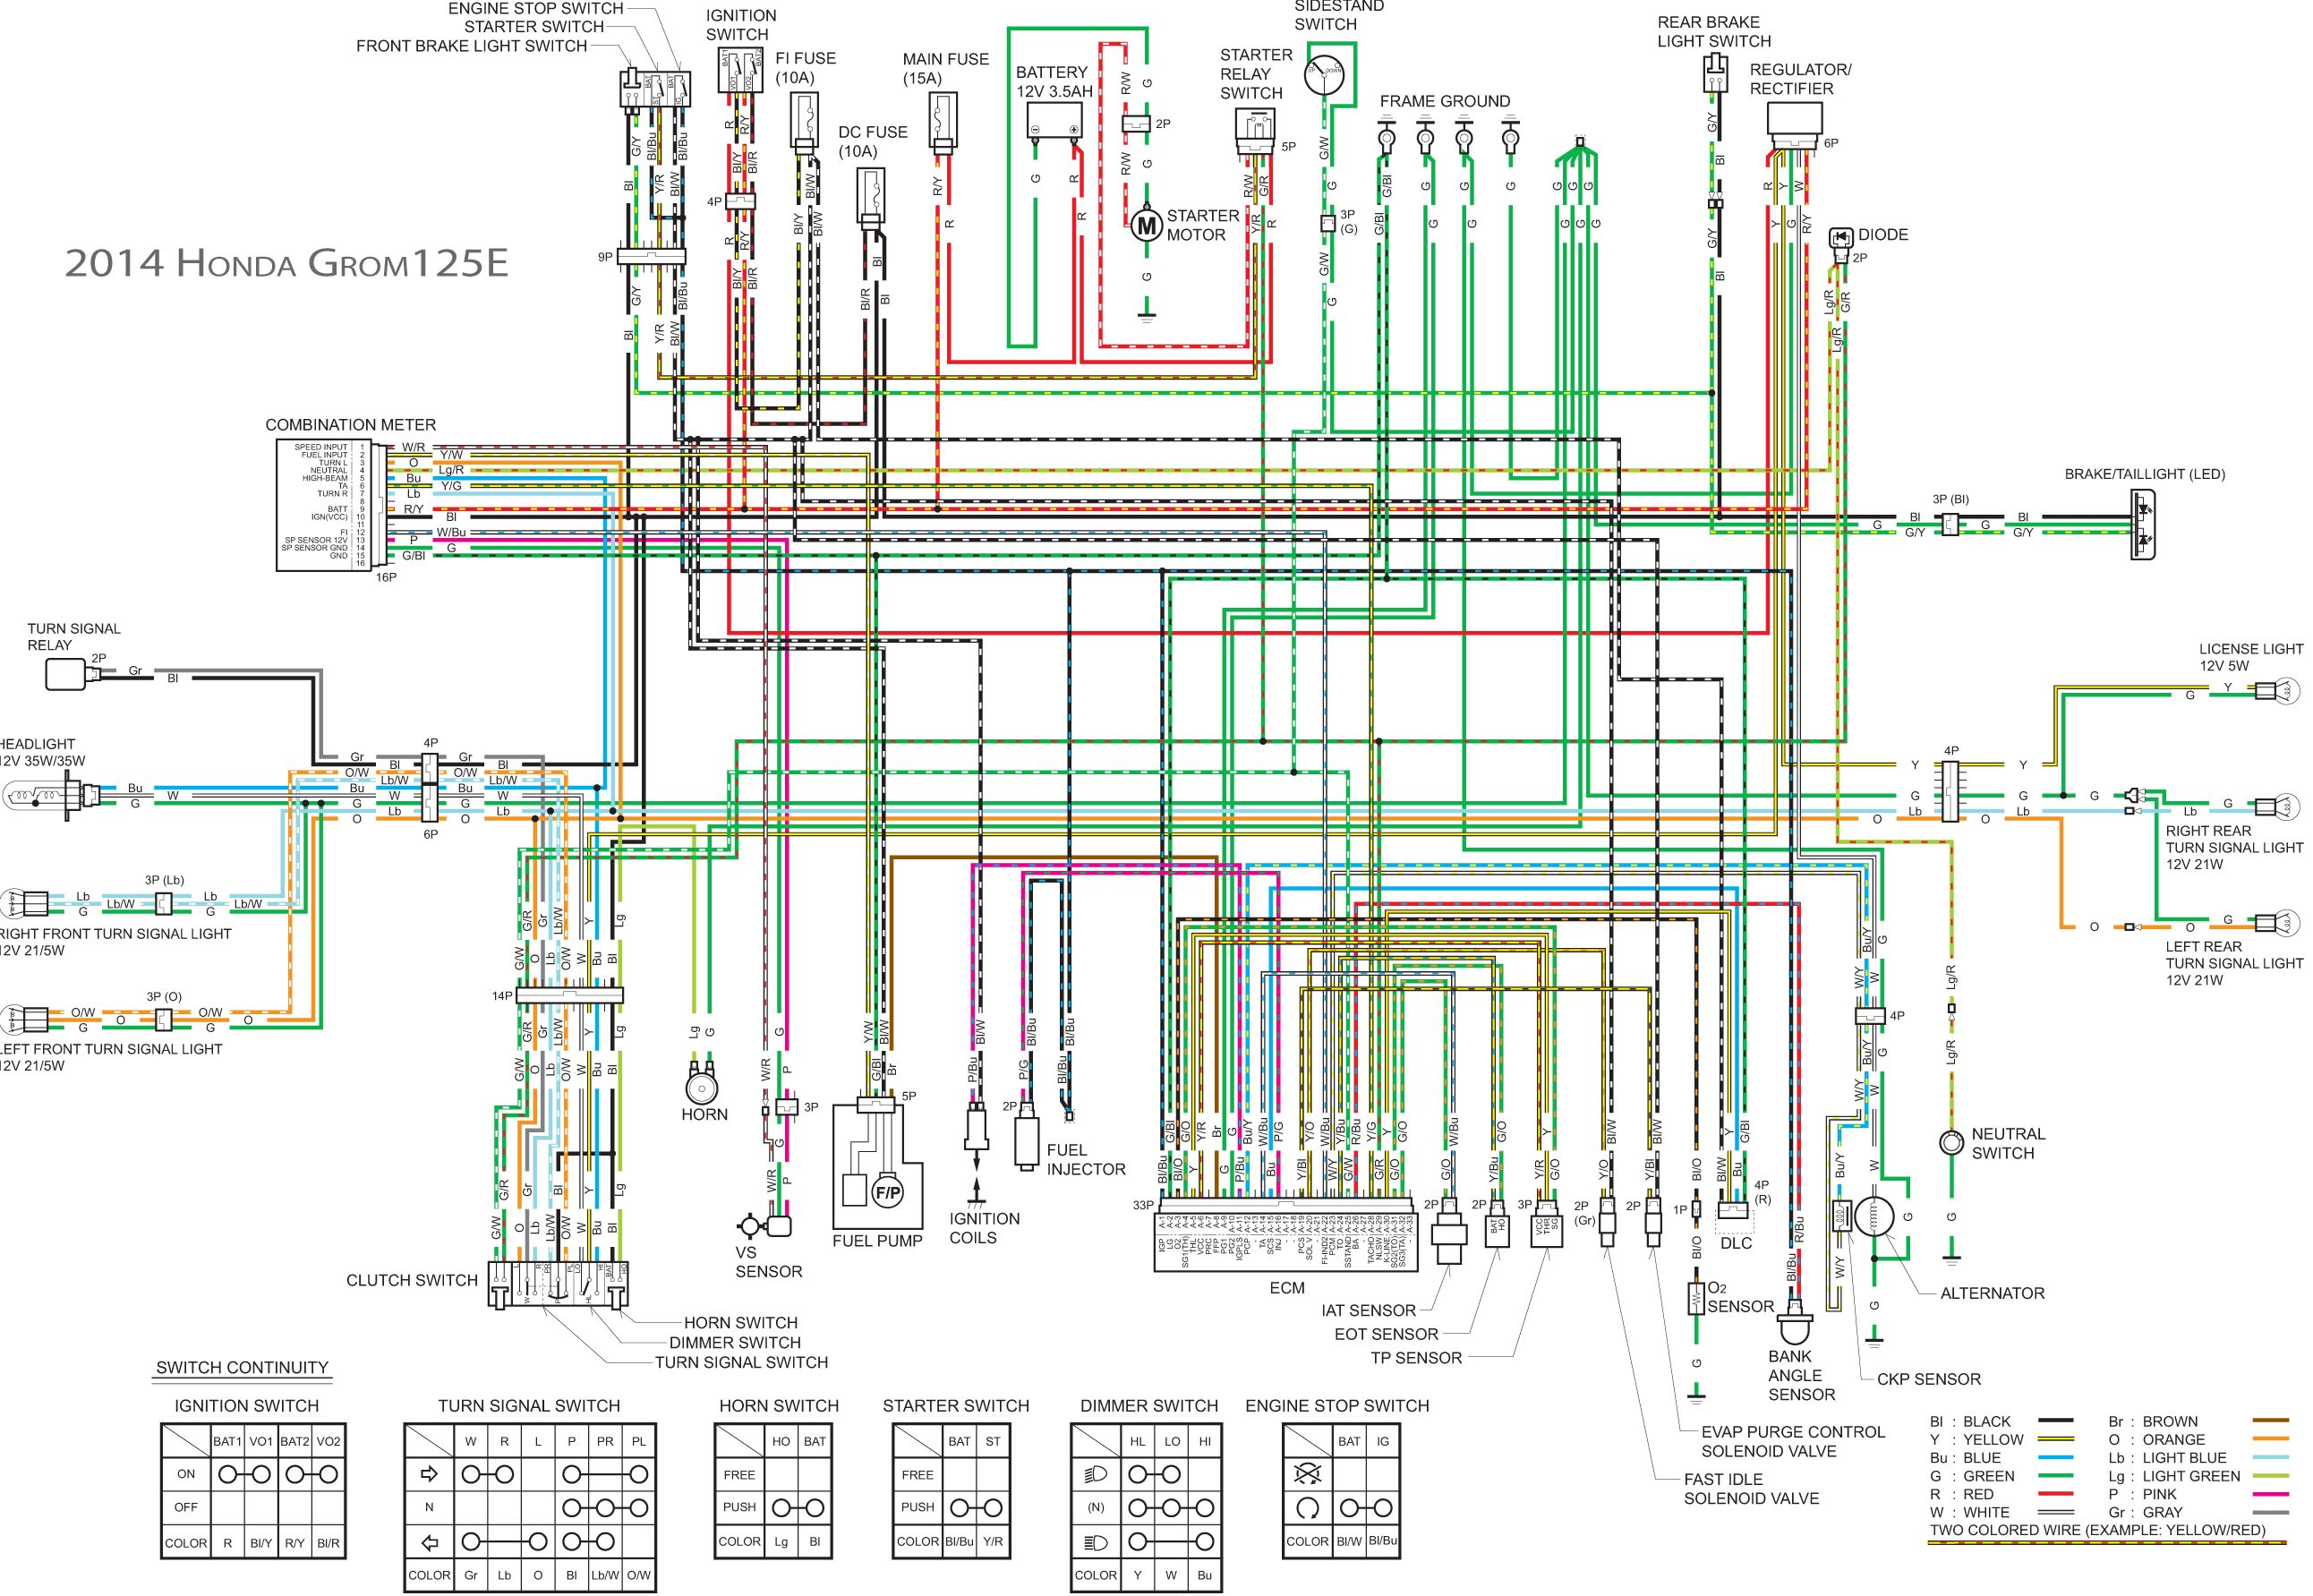 1974 ct70 wiring diagram a double switch honda grom engine | get free image about